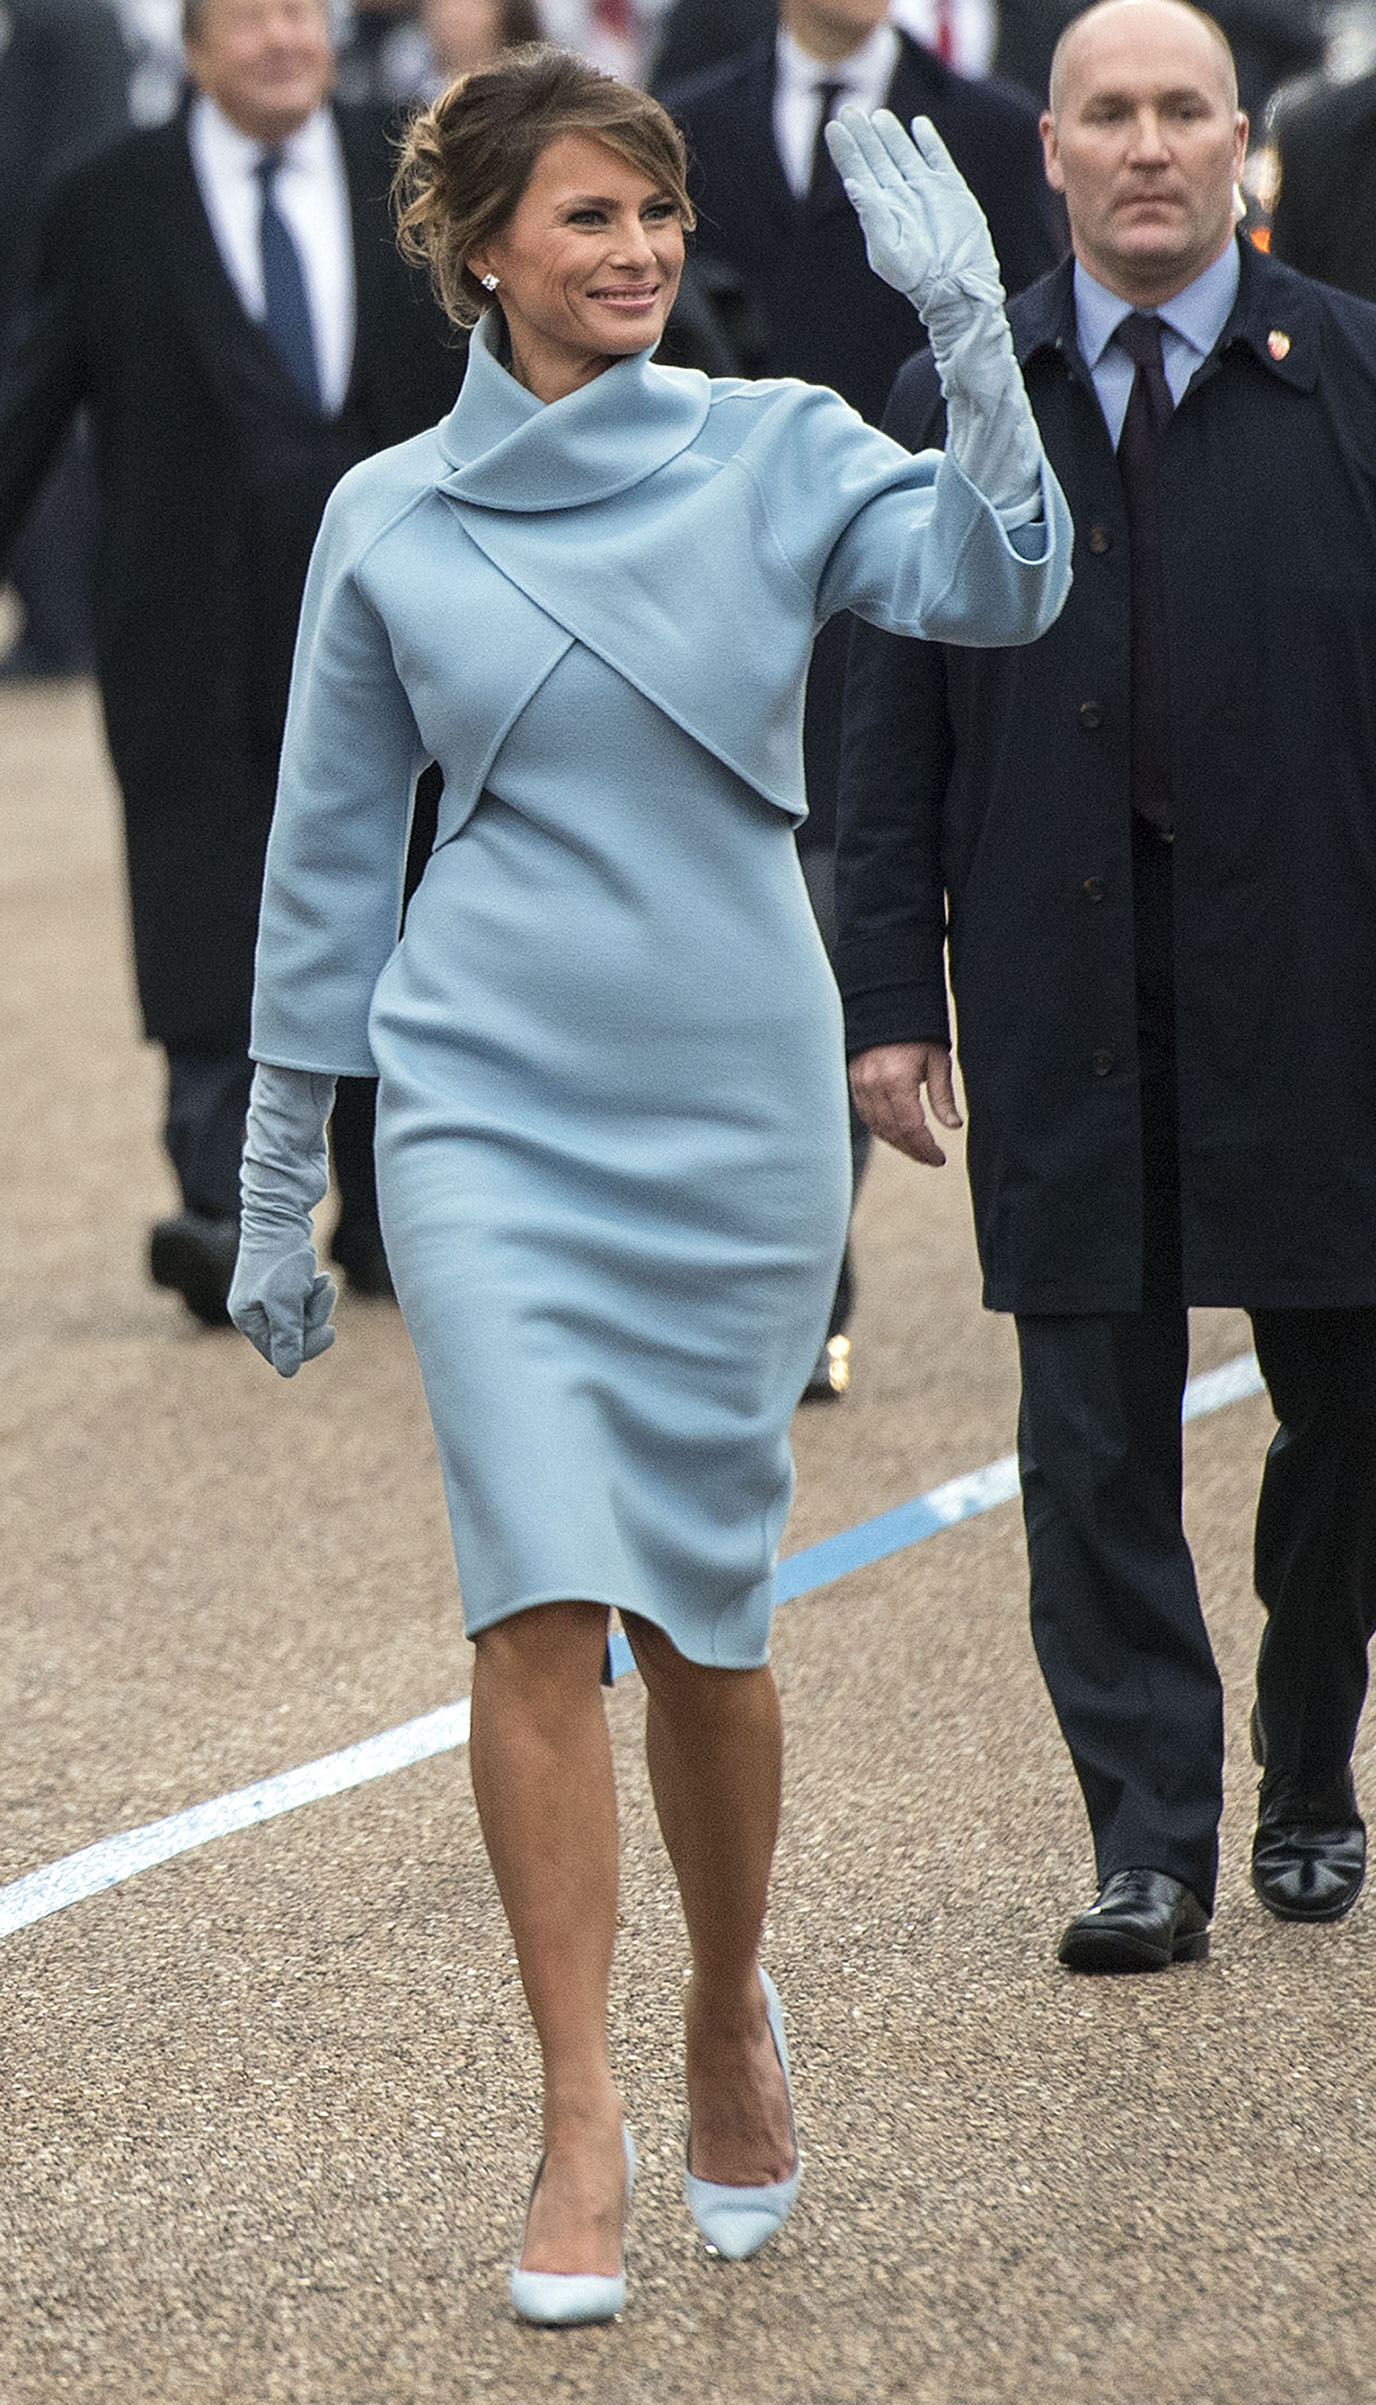 First lady Melania Trump wearing a powder blue cashmere skirt suit by Ralph Lauren Collection,  waves to supporters in the inaugural parade on Jan. 20, 2017 in Washington, DC.